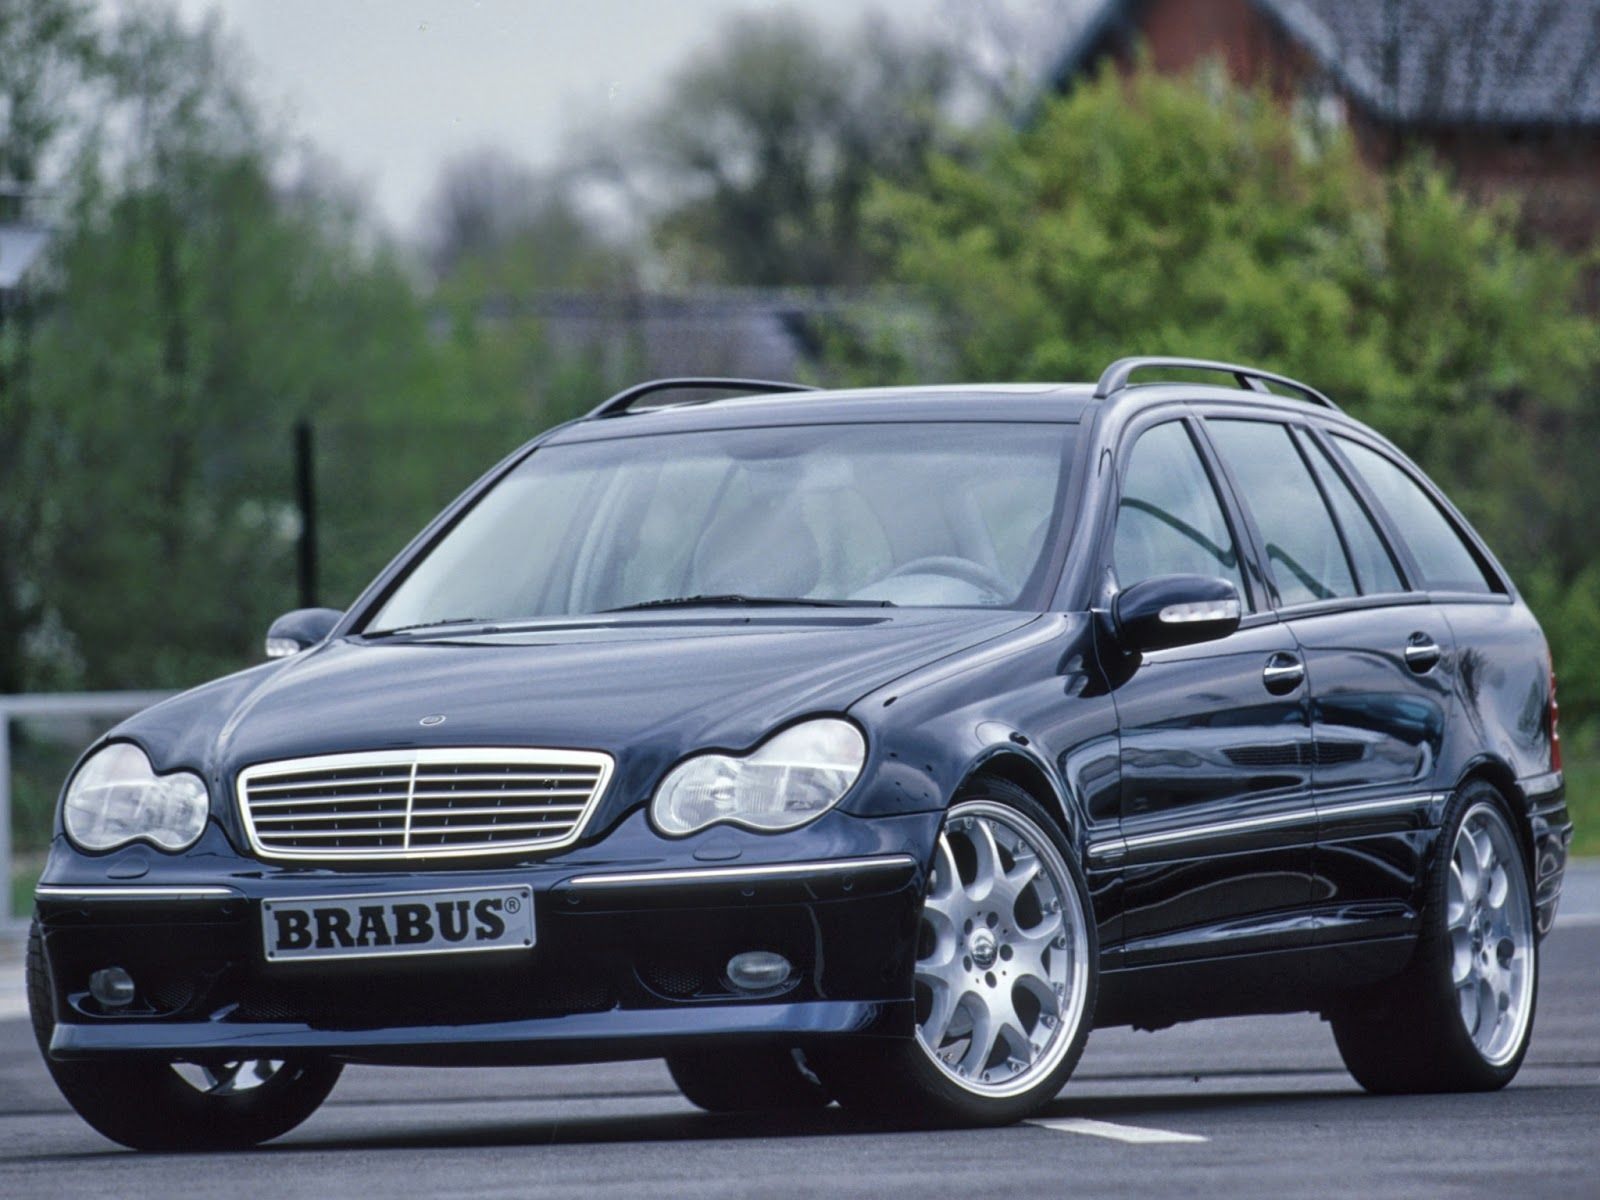 Mercedes benz c320 s203 brabus mercedes benz benz and for Mercedes benz c320